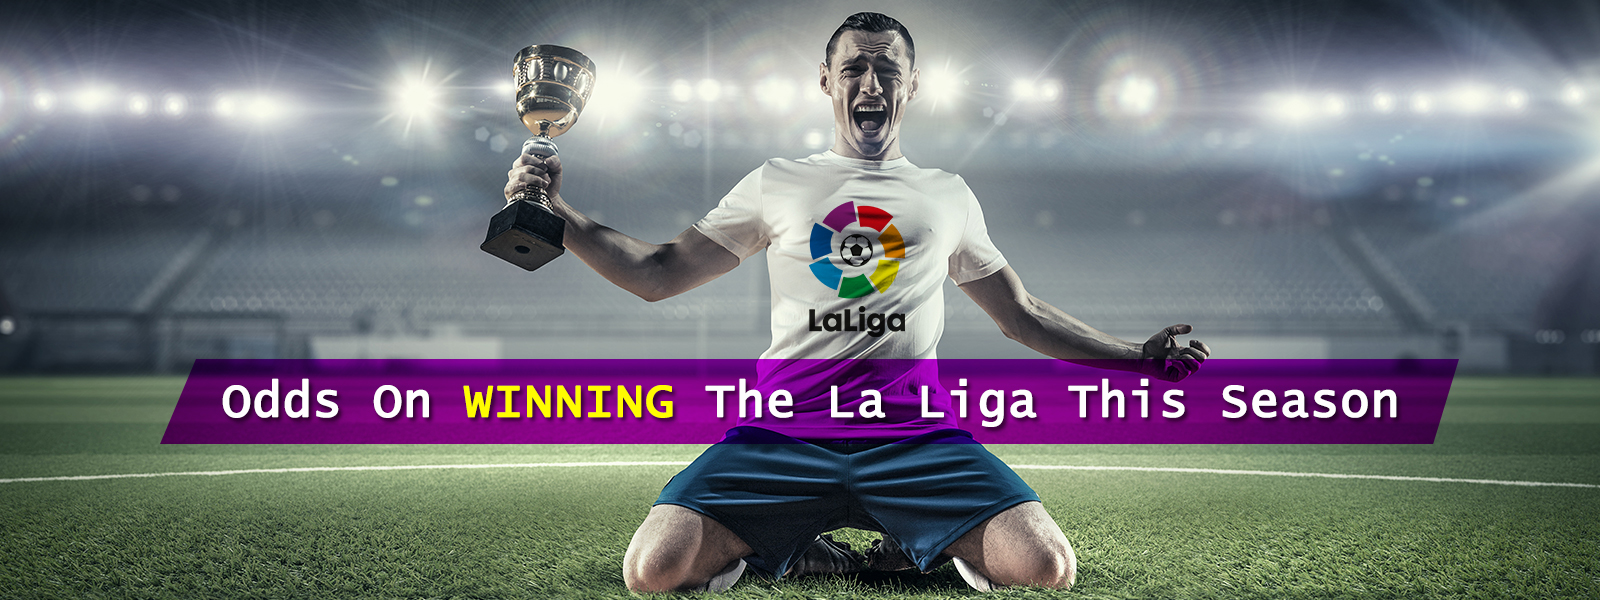 Top 4 Winner Predictions With Odds In La Liga